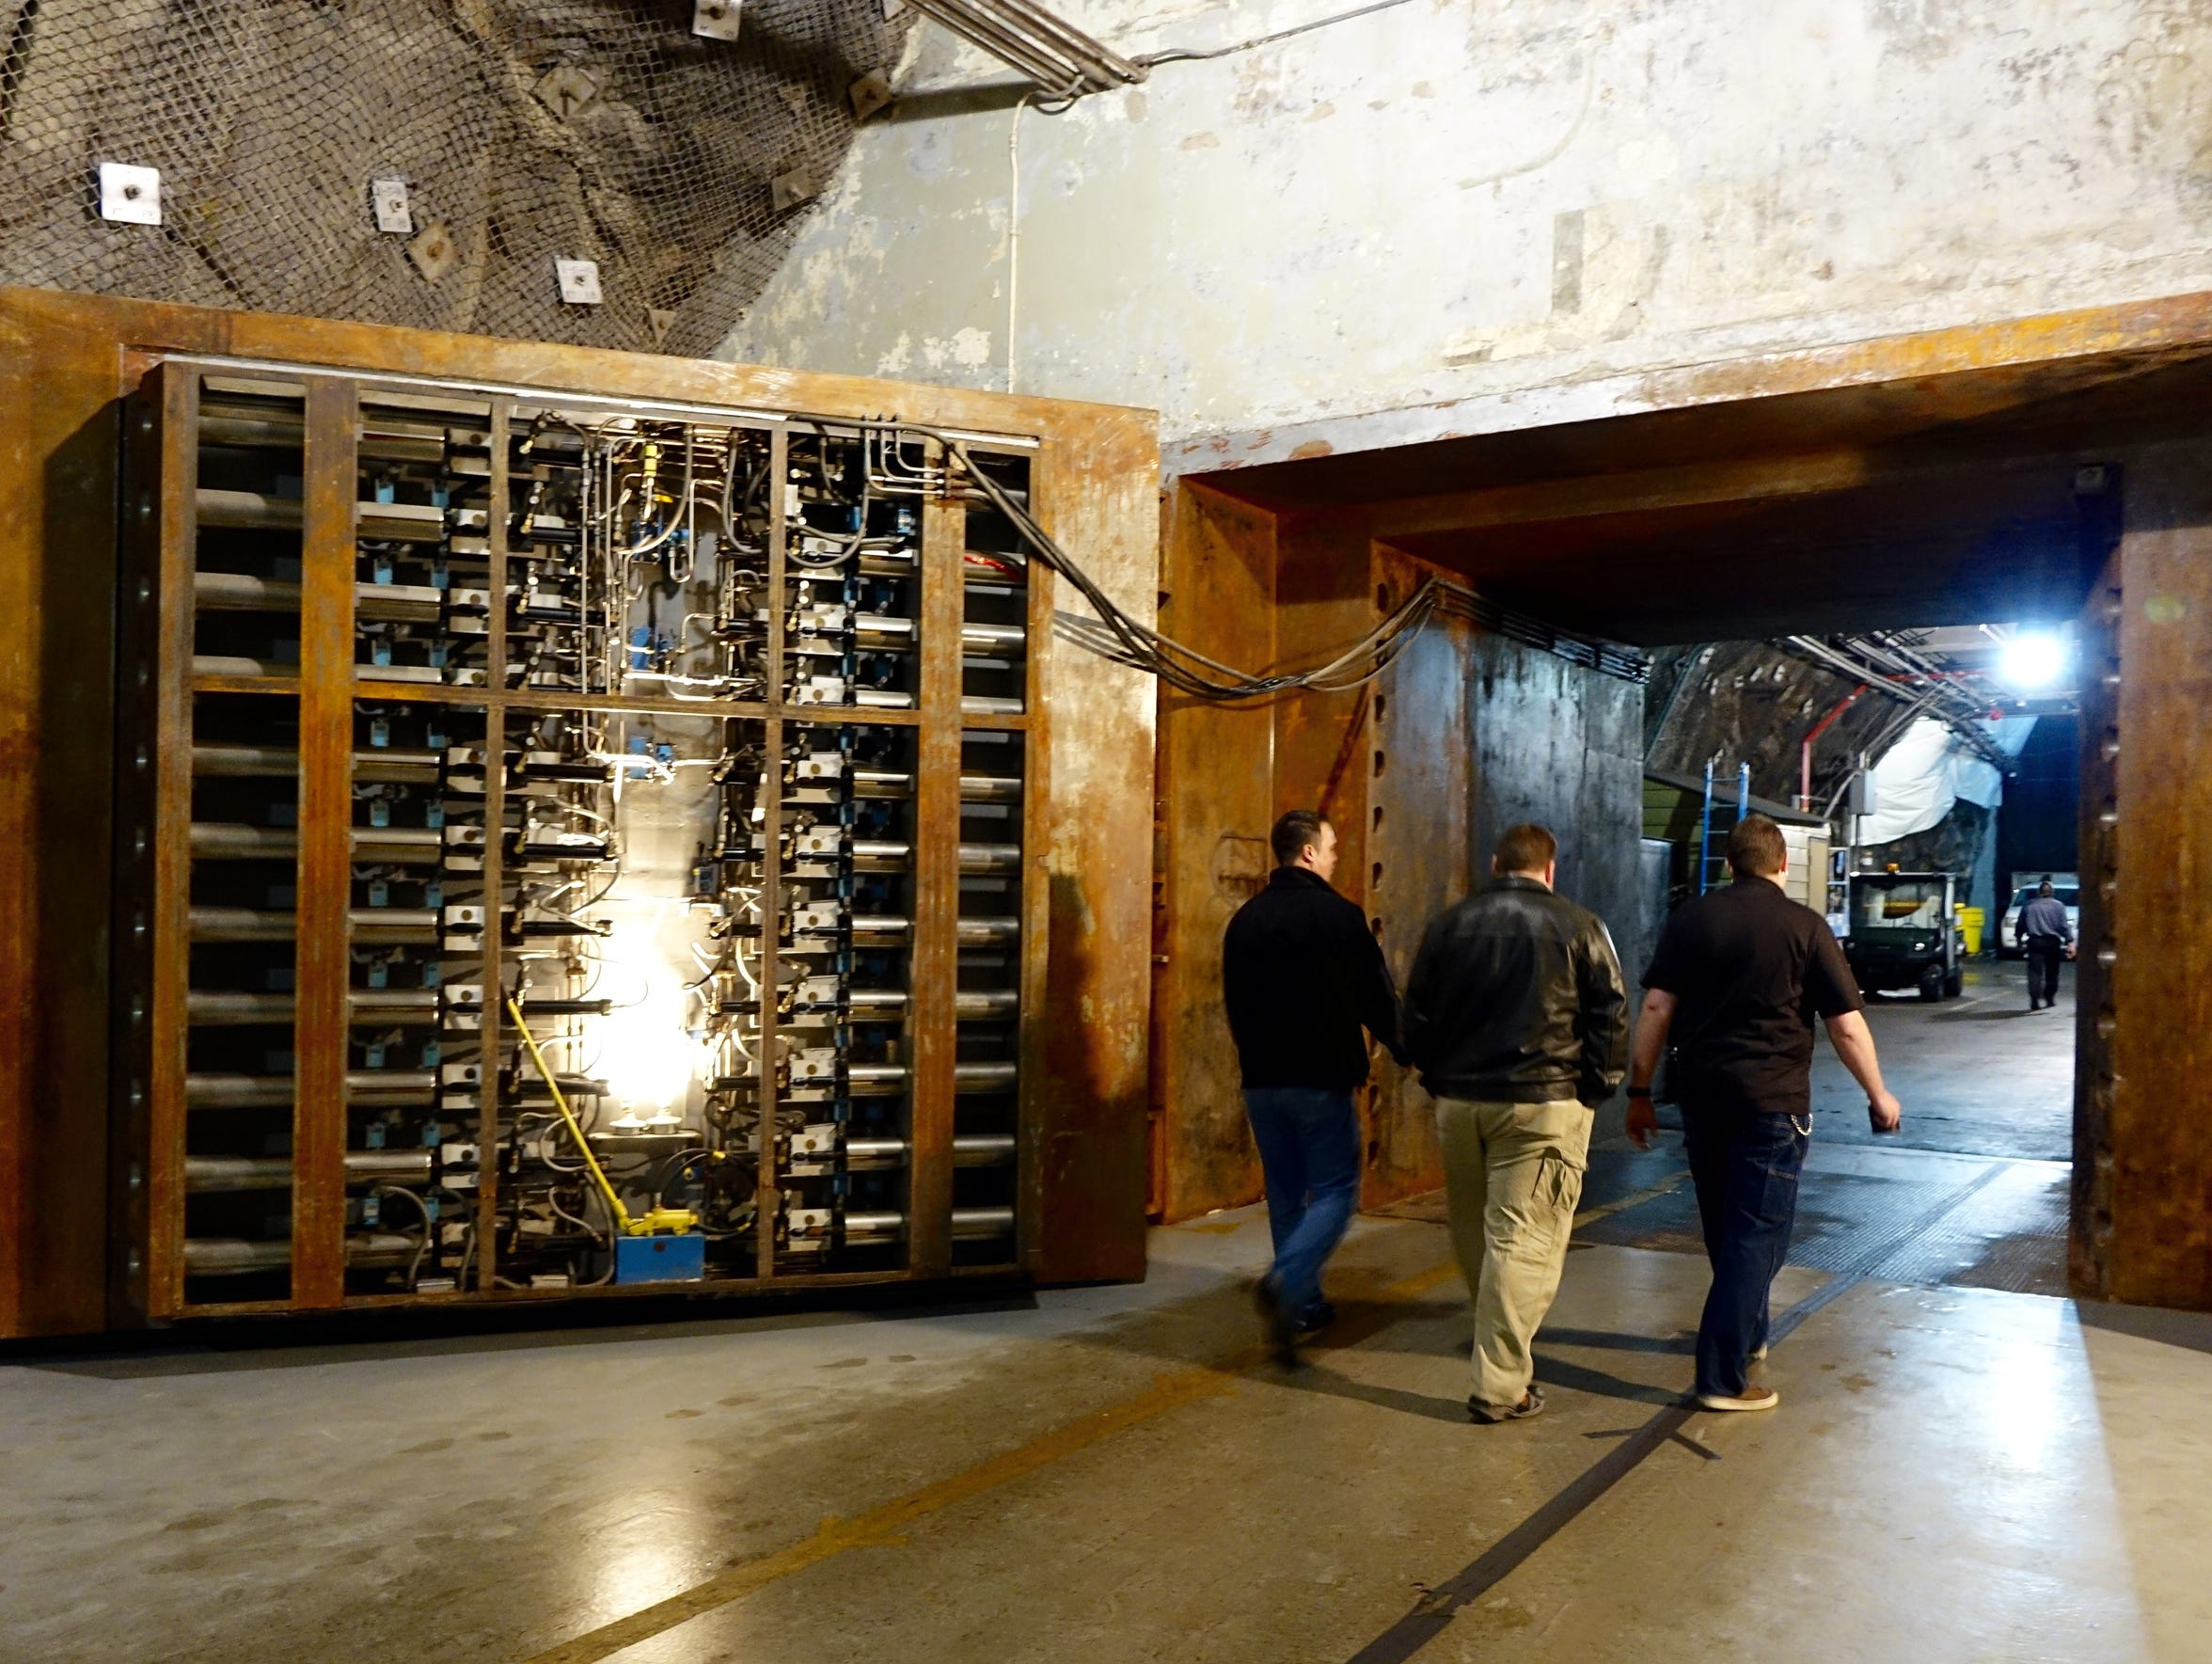 Workers enter the Cheyenne Mountain bunker through